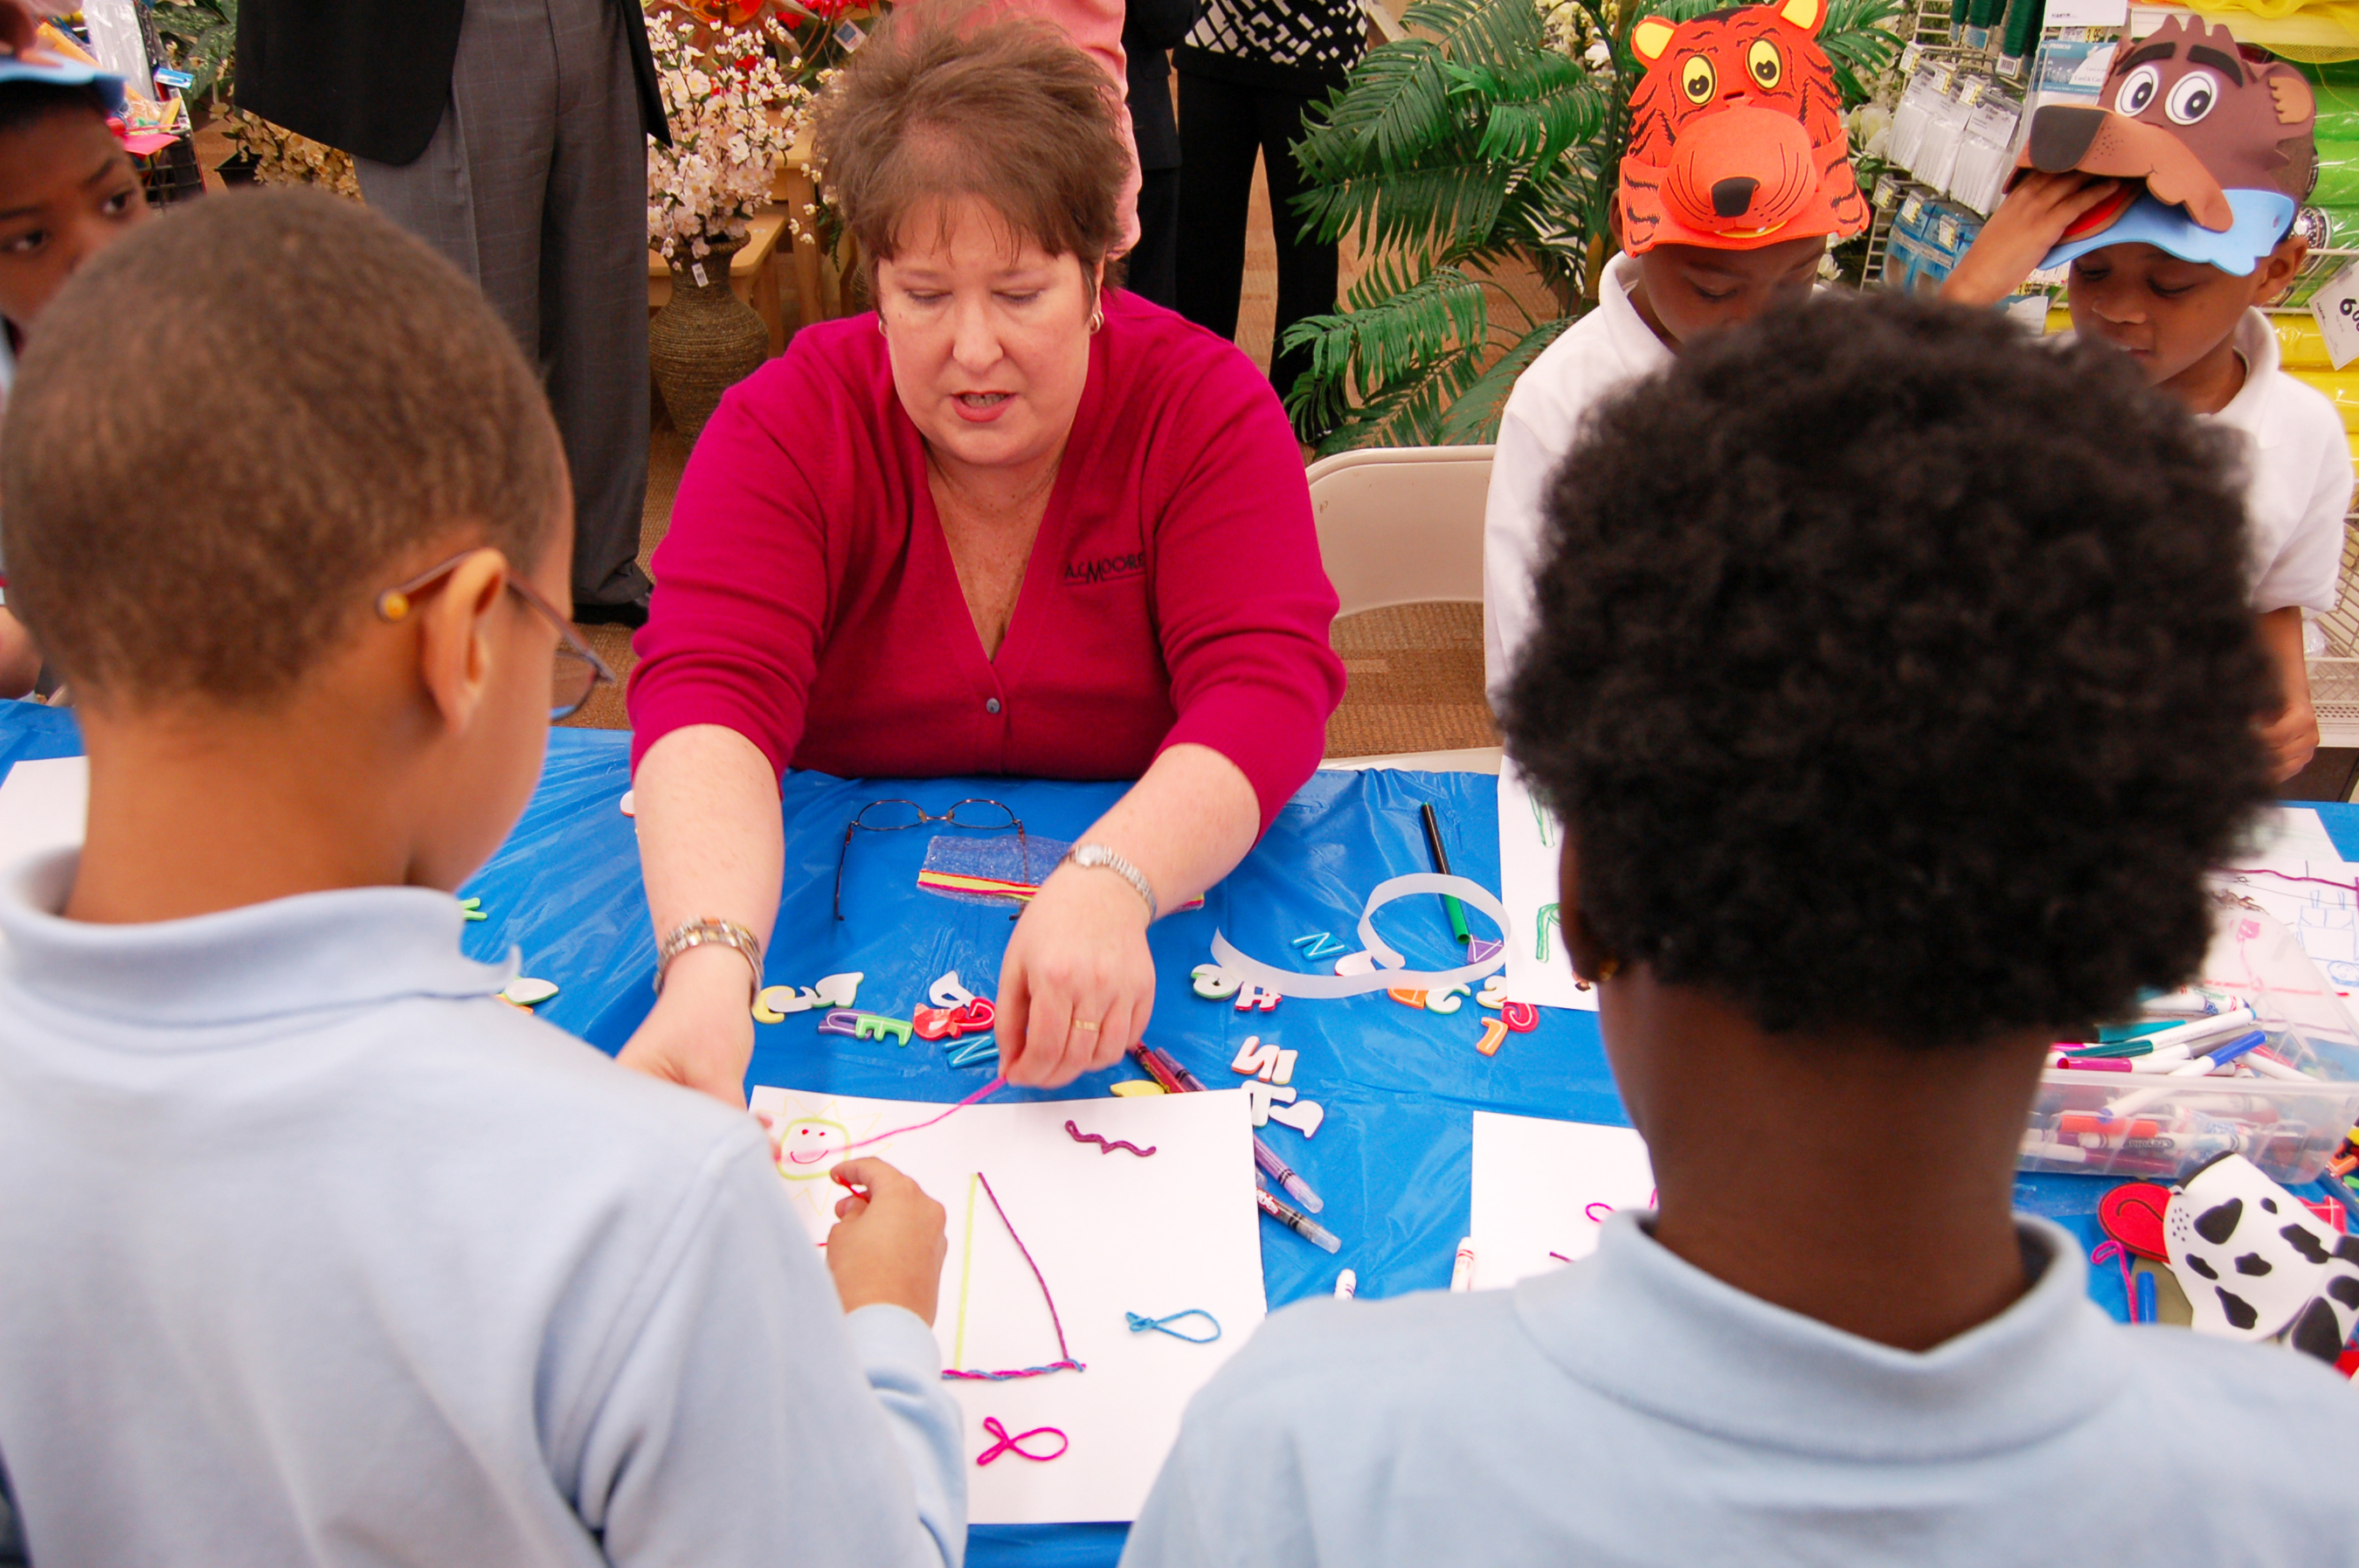 AC Moore Kicks Off Free Summer Activities for Kids With Card Making for Veterans & Troops and T-Shirt Making with Simply Spray